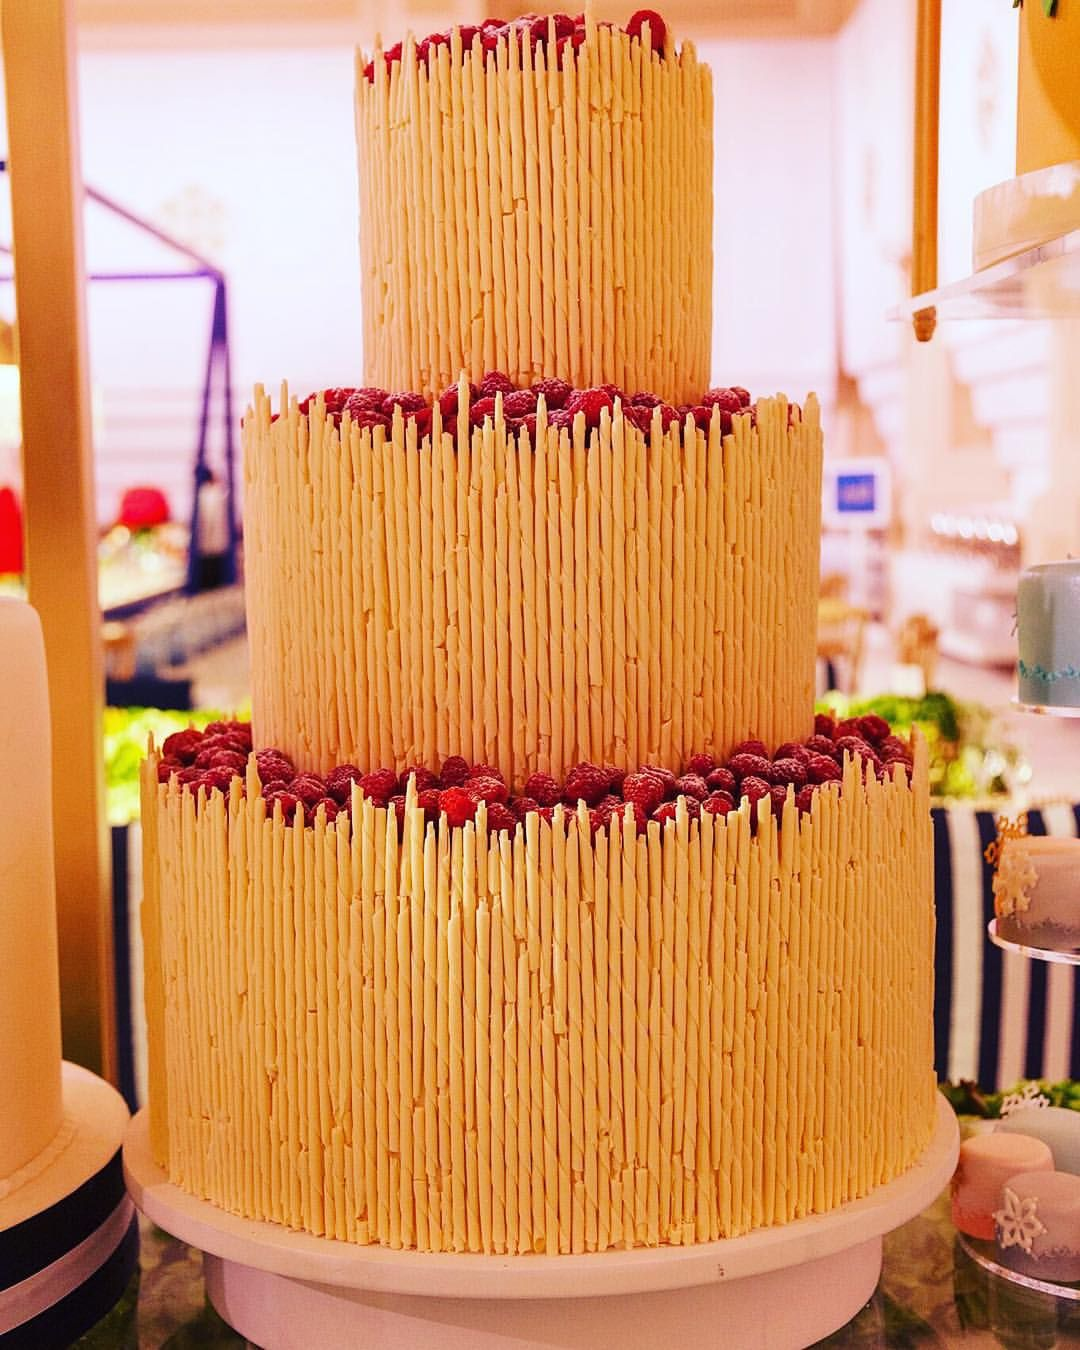 Cutting your wedding cake in front of all your friends and family during the your wedding is one of the most important event in your life. And this cake photography is totally a mouth-watering dessert that everyone would love! Anything to say? #dubaiphotographer #weddingcake #mouthwateringcake #dessert #wedding #cakephotography #yummycake #weddingdetails #epicreels #epicreelsdubai